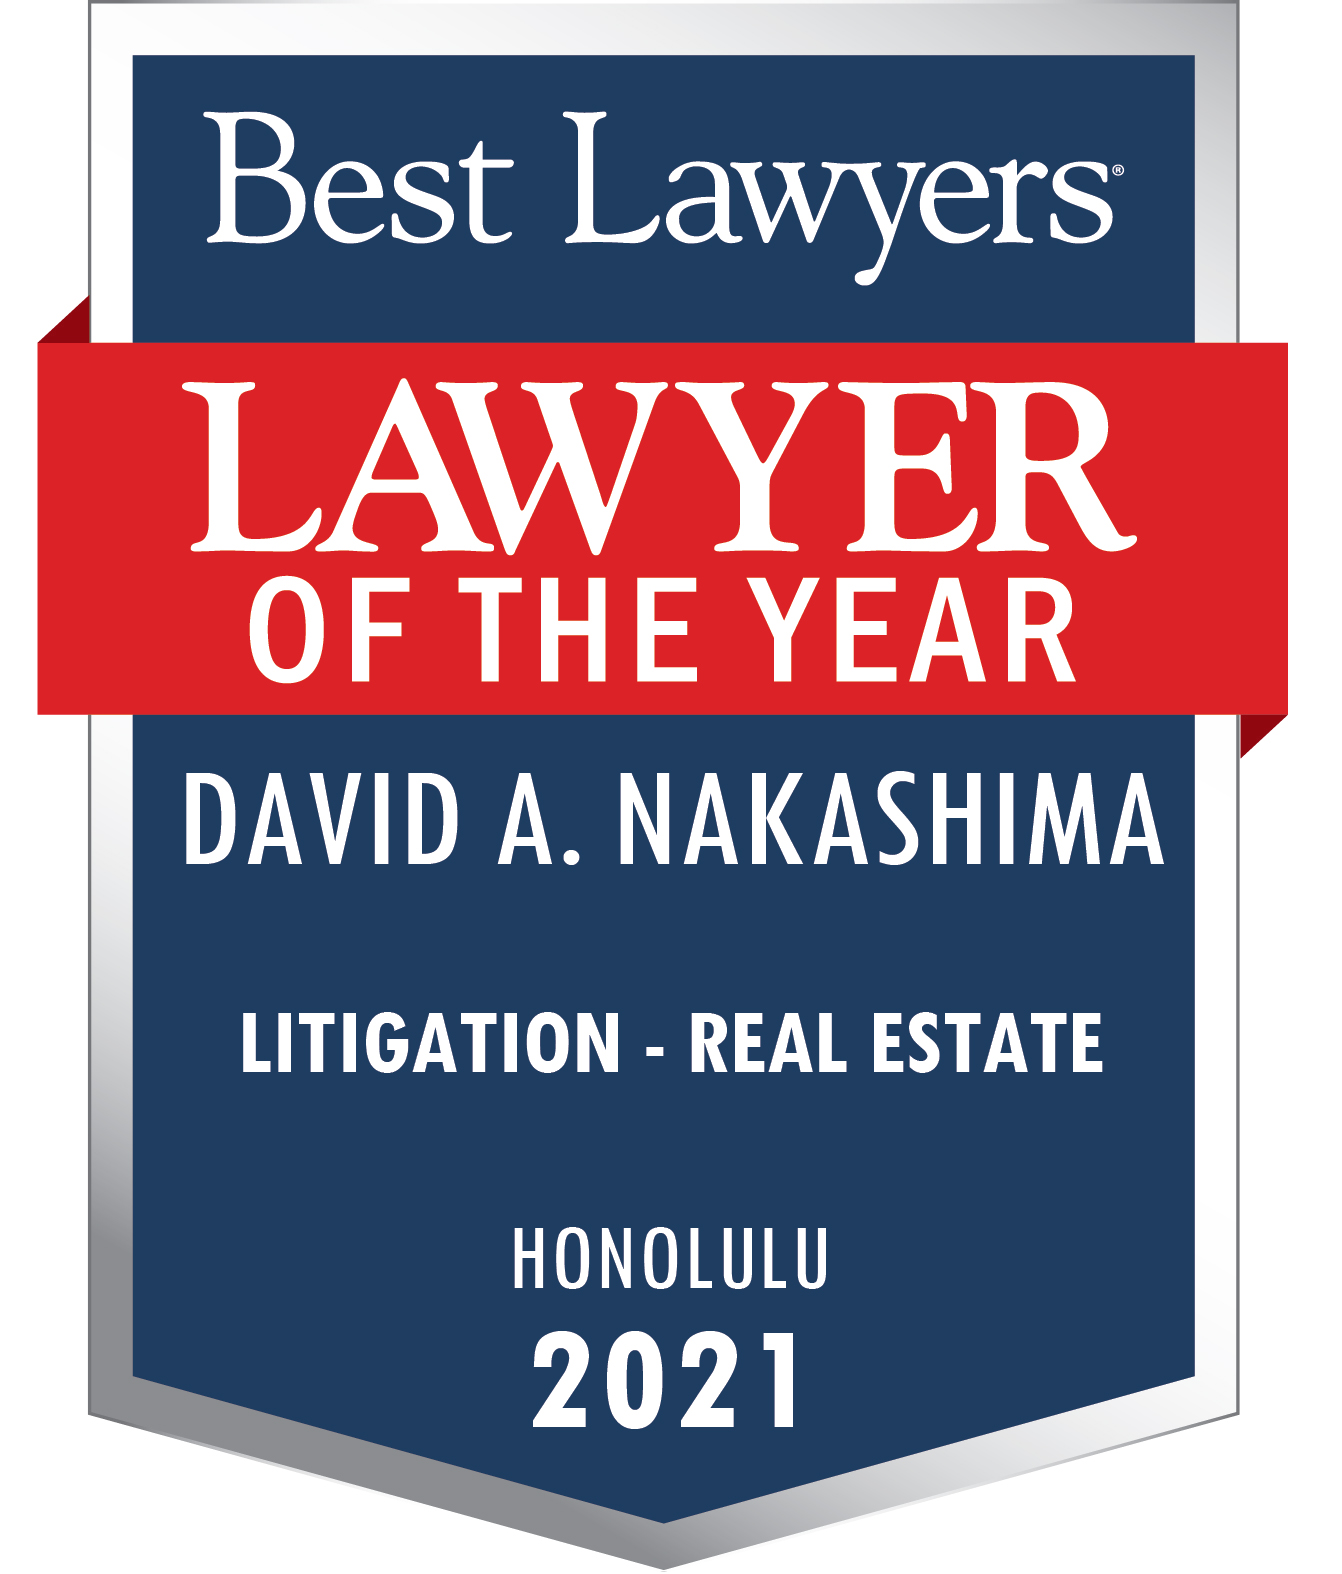 Best Lawyers Award Badge 2021